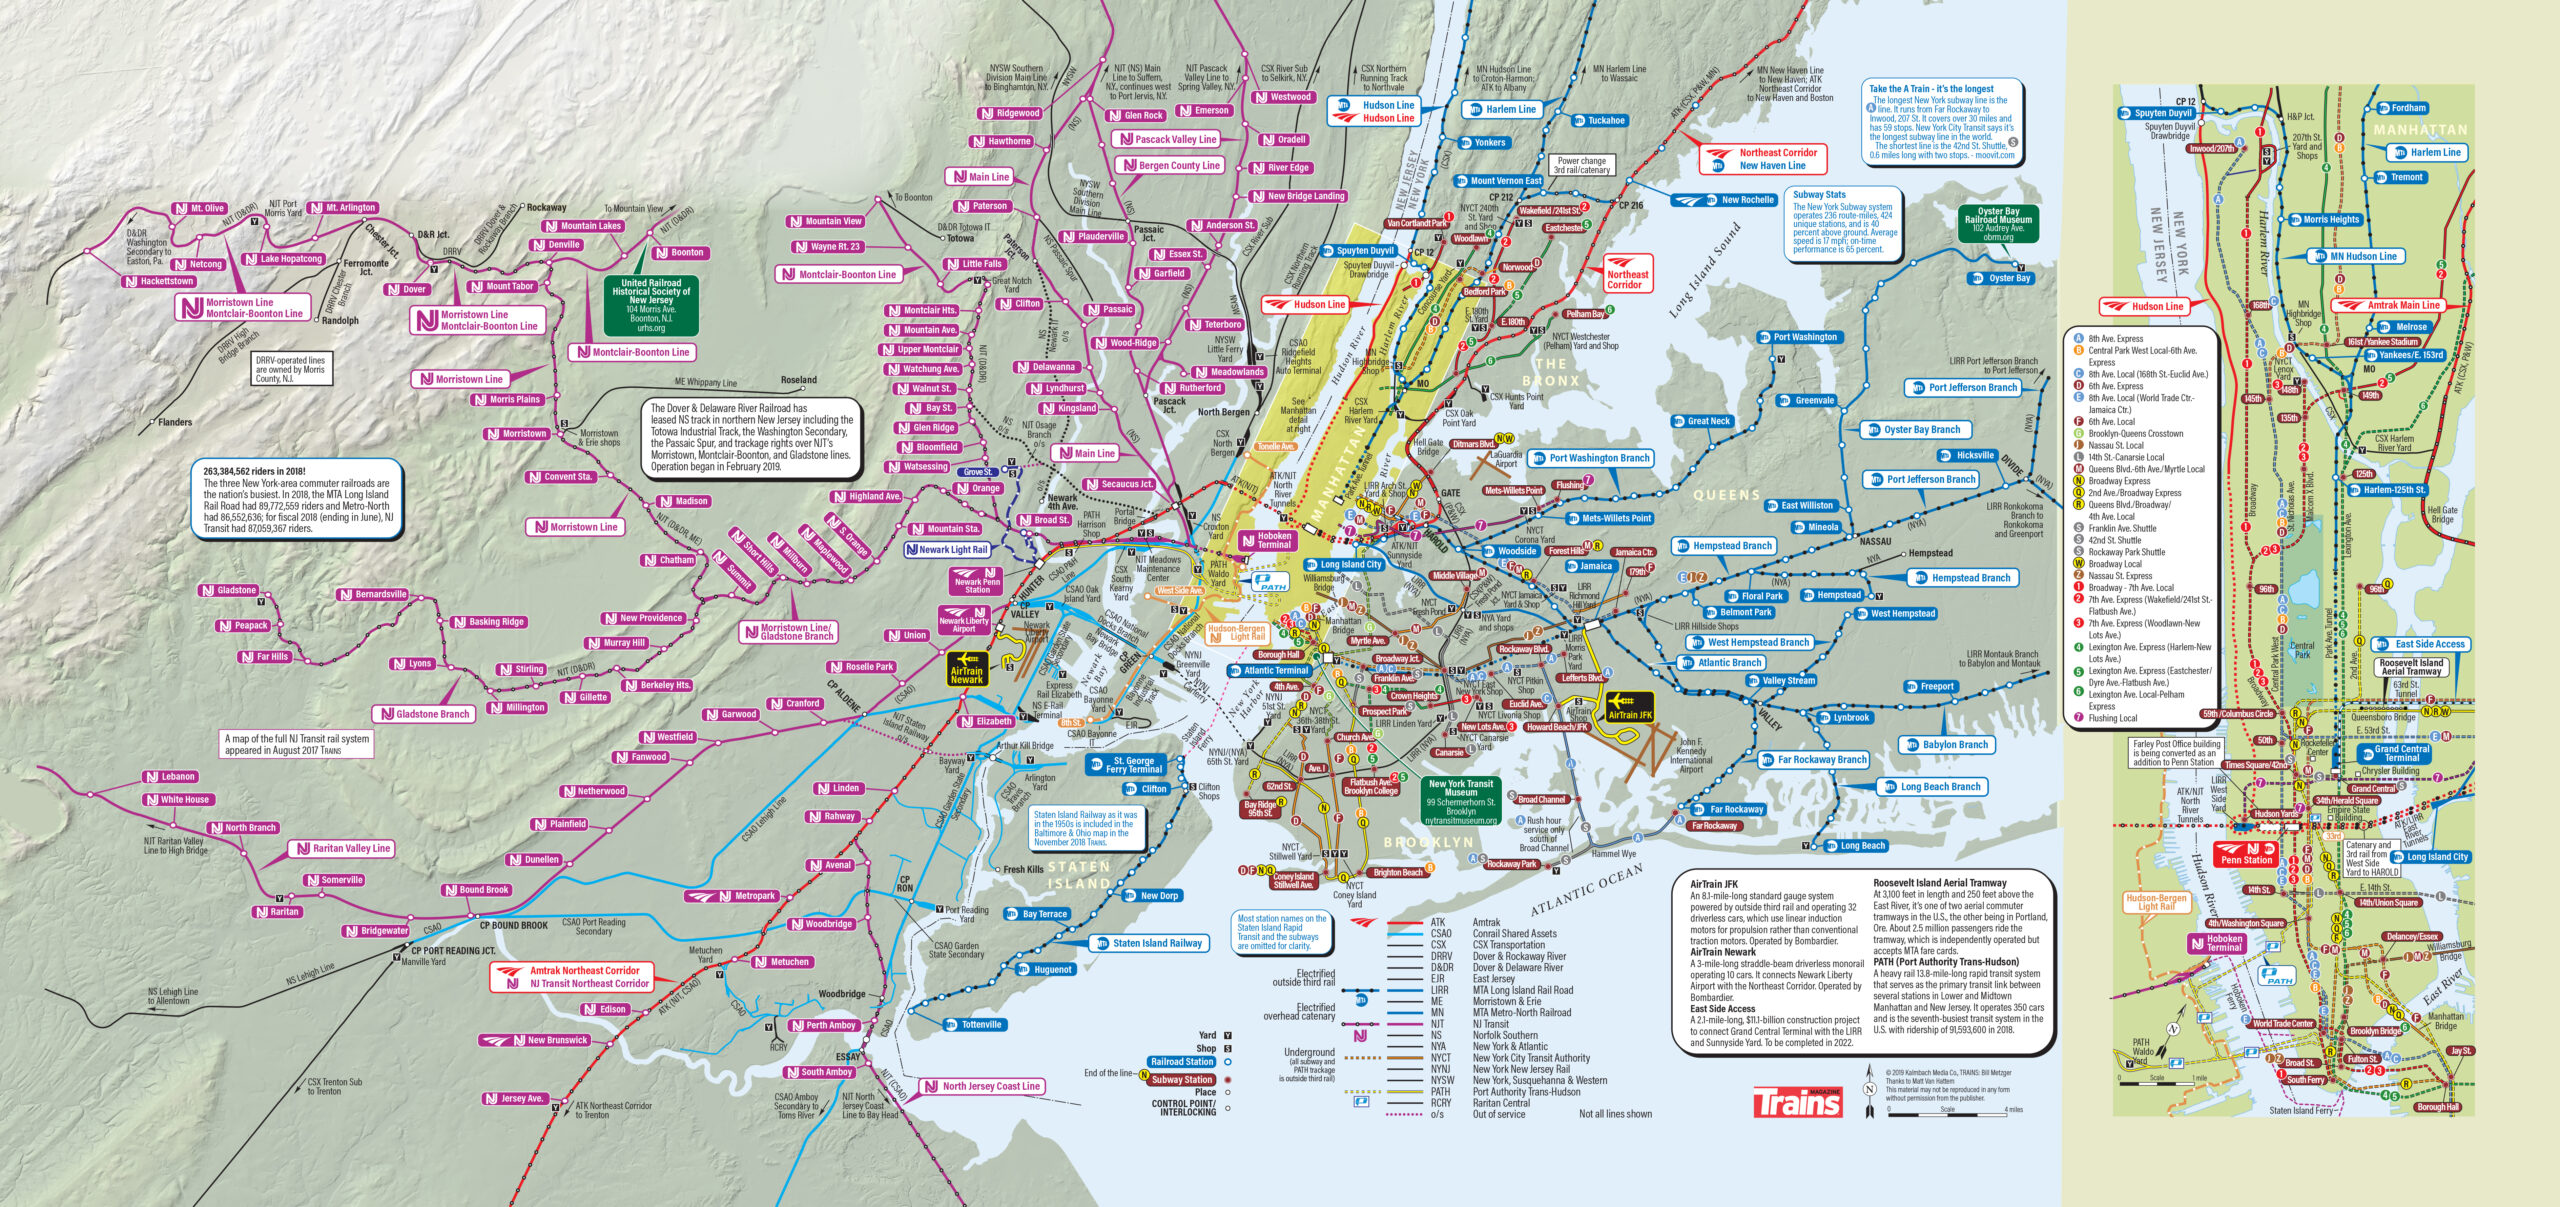 NYC train map: Complicated route map of railroads in an around New York City.